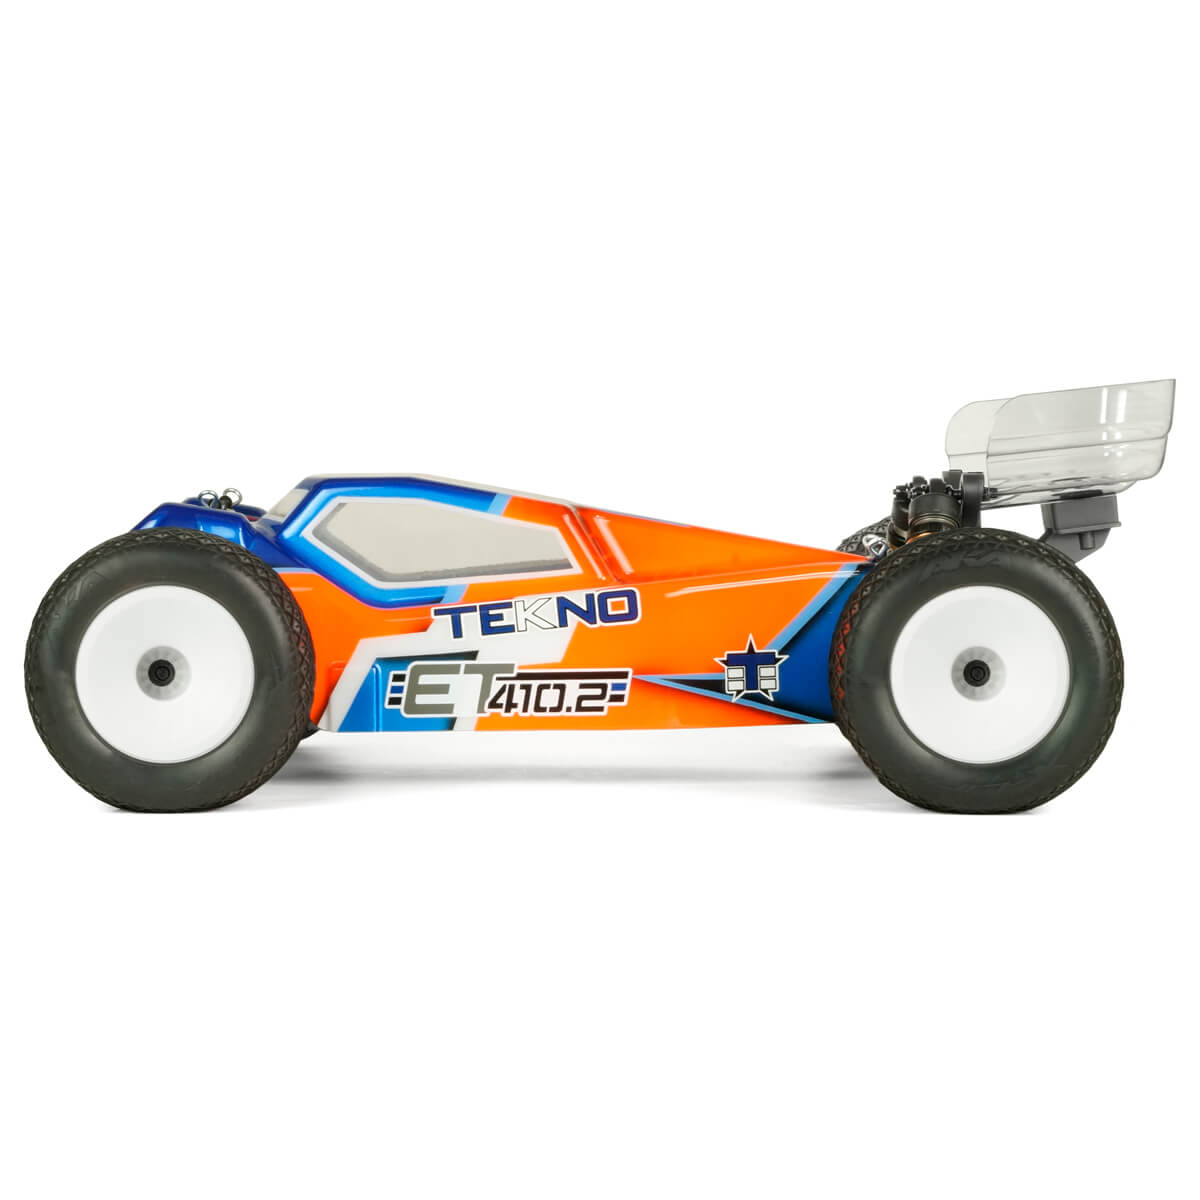 Tekno RC ET410.2 Parts